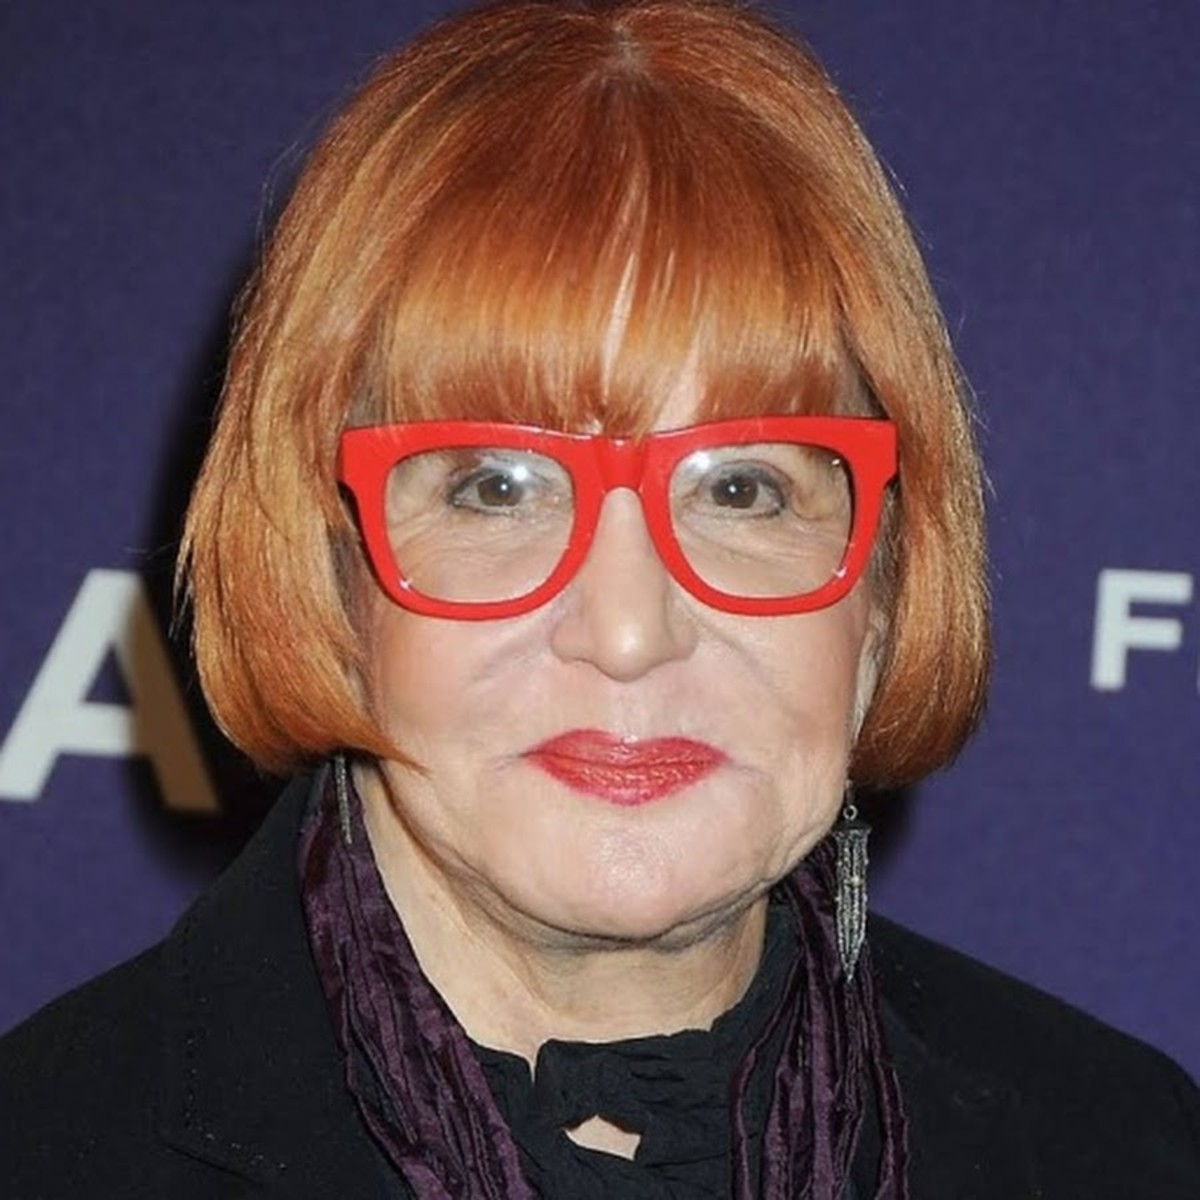 Sally Jessy Raphael always wore red frames. She did not change them because they began her signature.